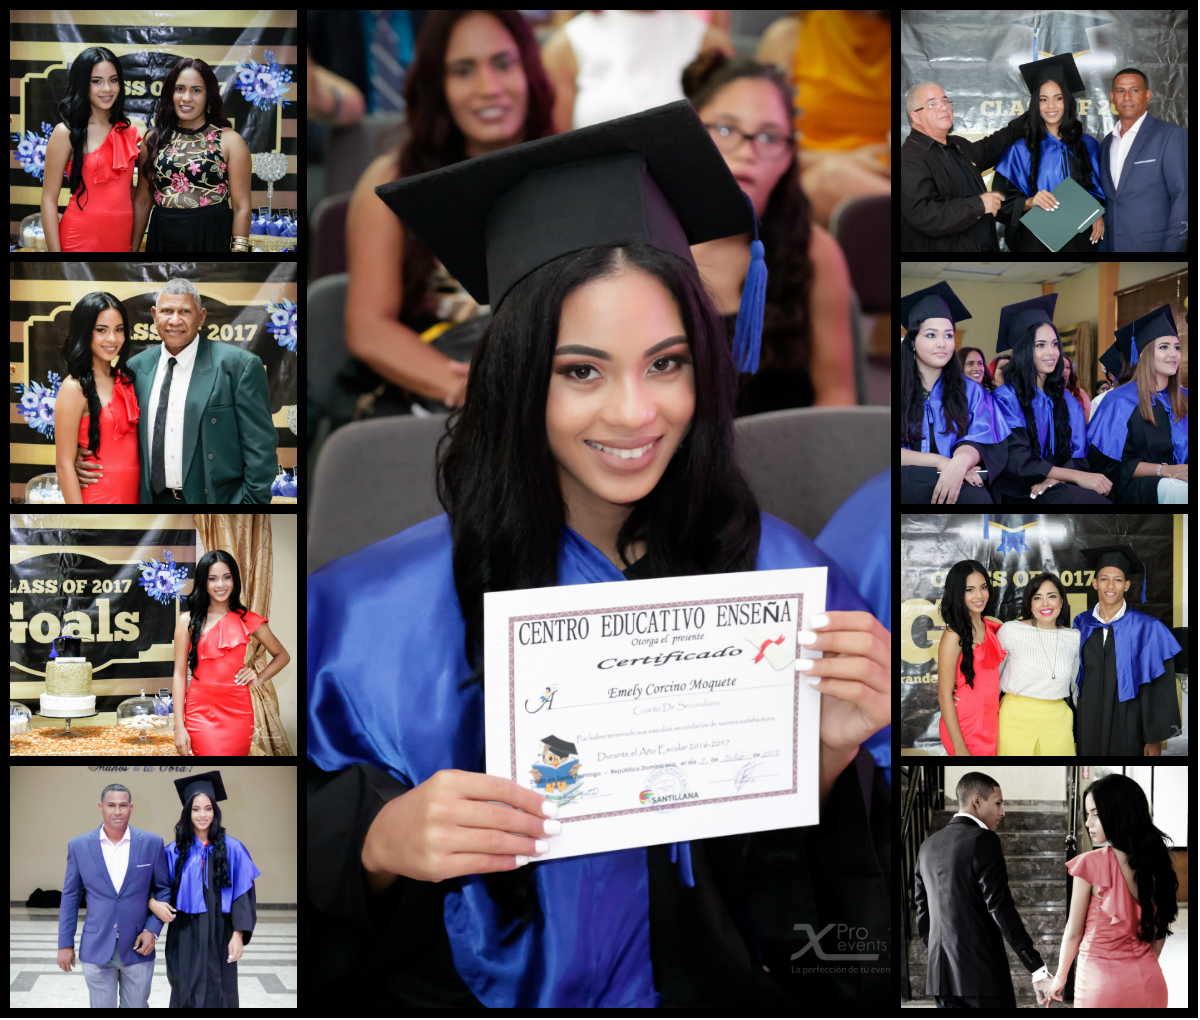 Graduacion Emely Corcino By X Pro events (Collage)